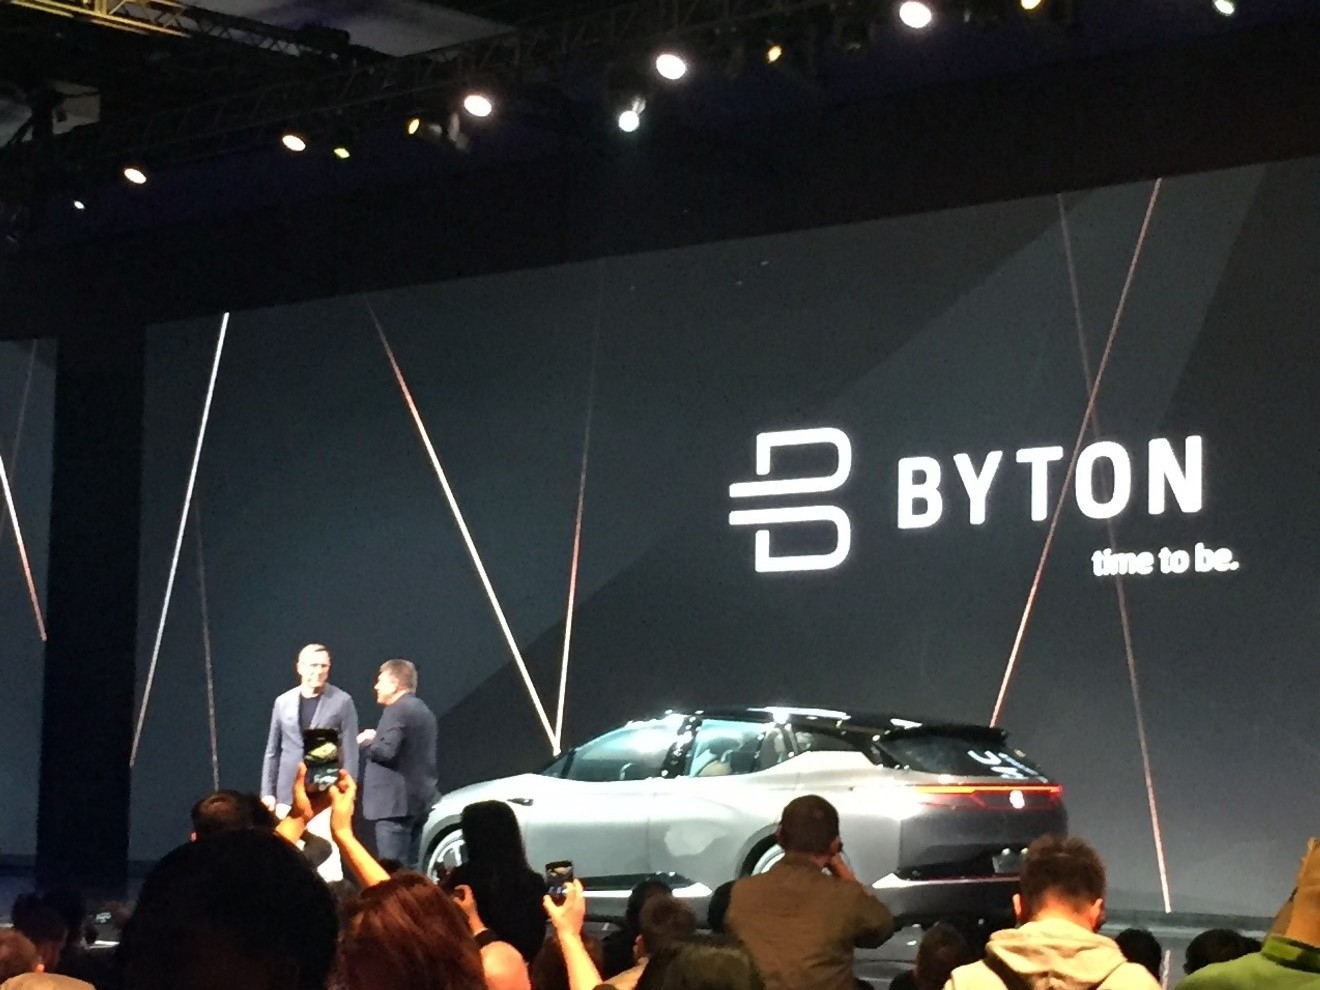 Carsten Breitfeld and Daniel Kirchert, Byton's co-founders present their concept SUV, which they believe will be the first ever truly smart car.